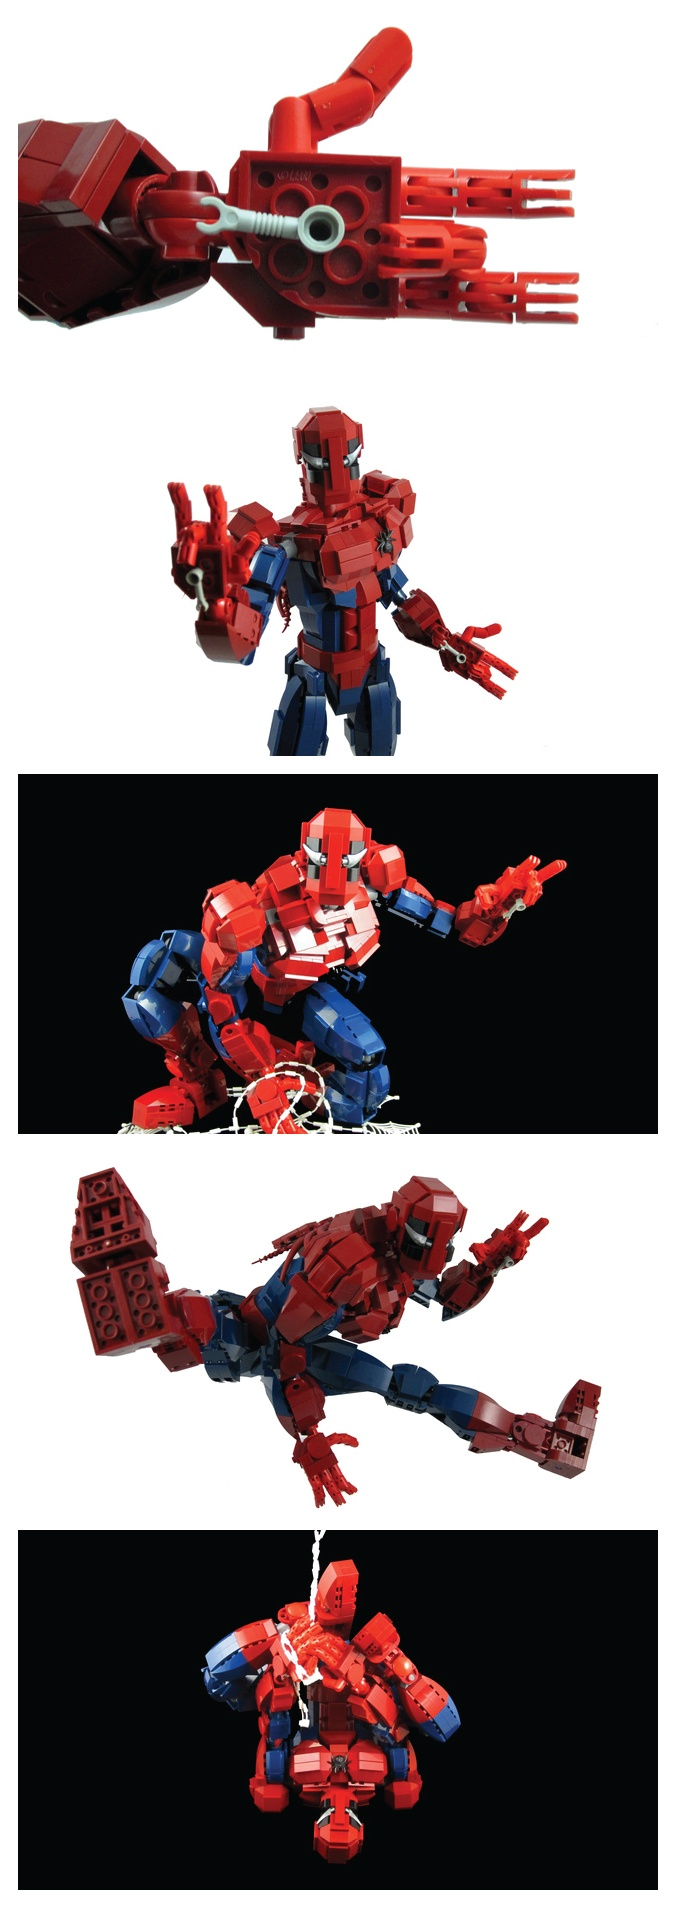 Lego Spiderman!